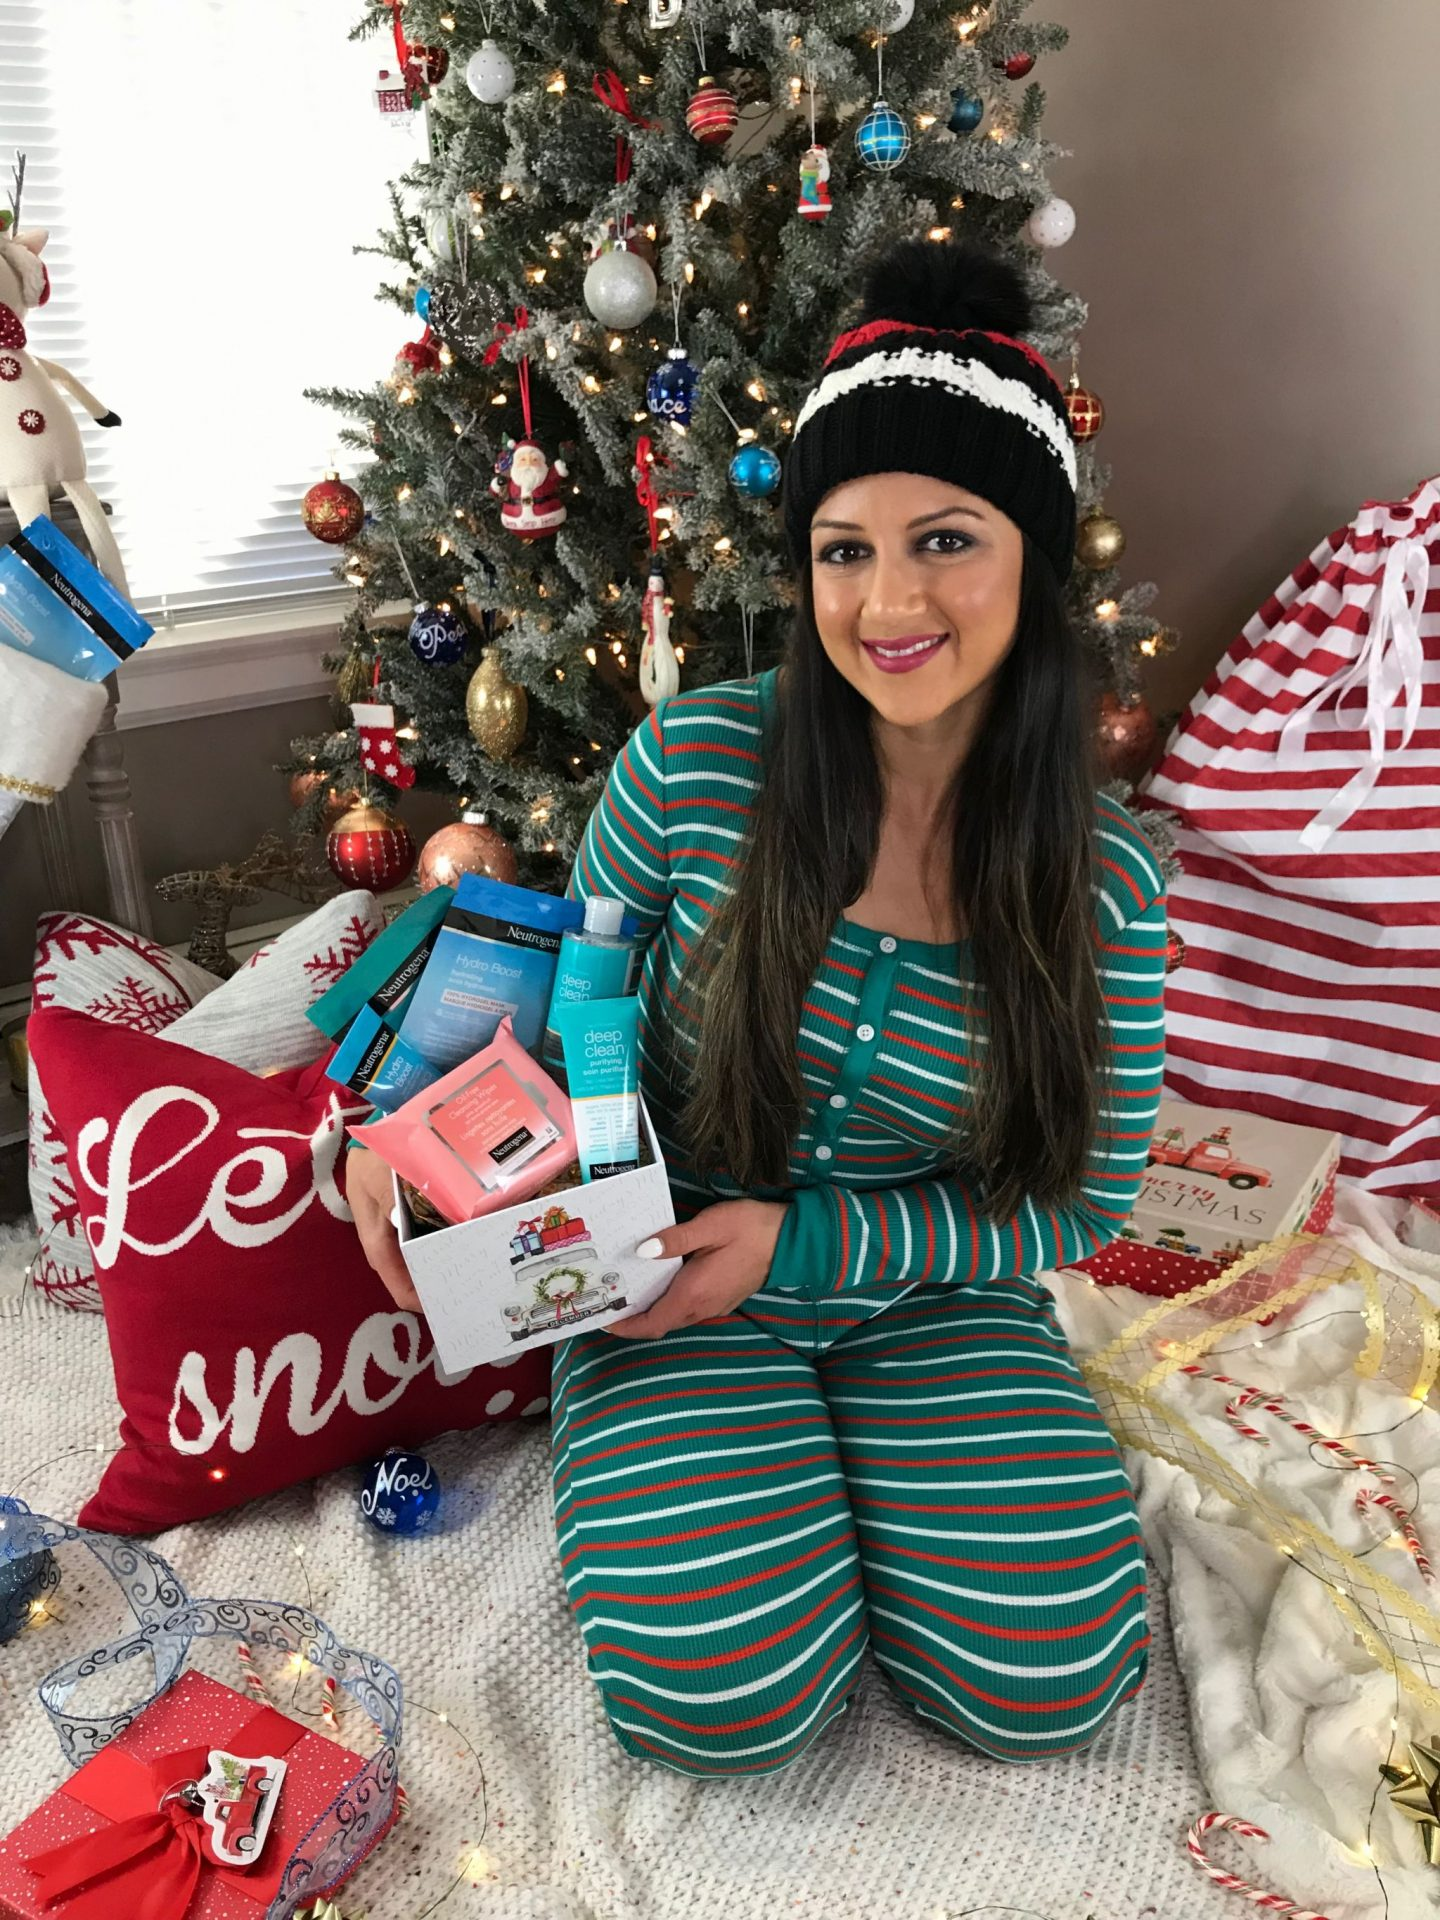 Neutrogena Gift Ideas for everyone on your list